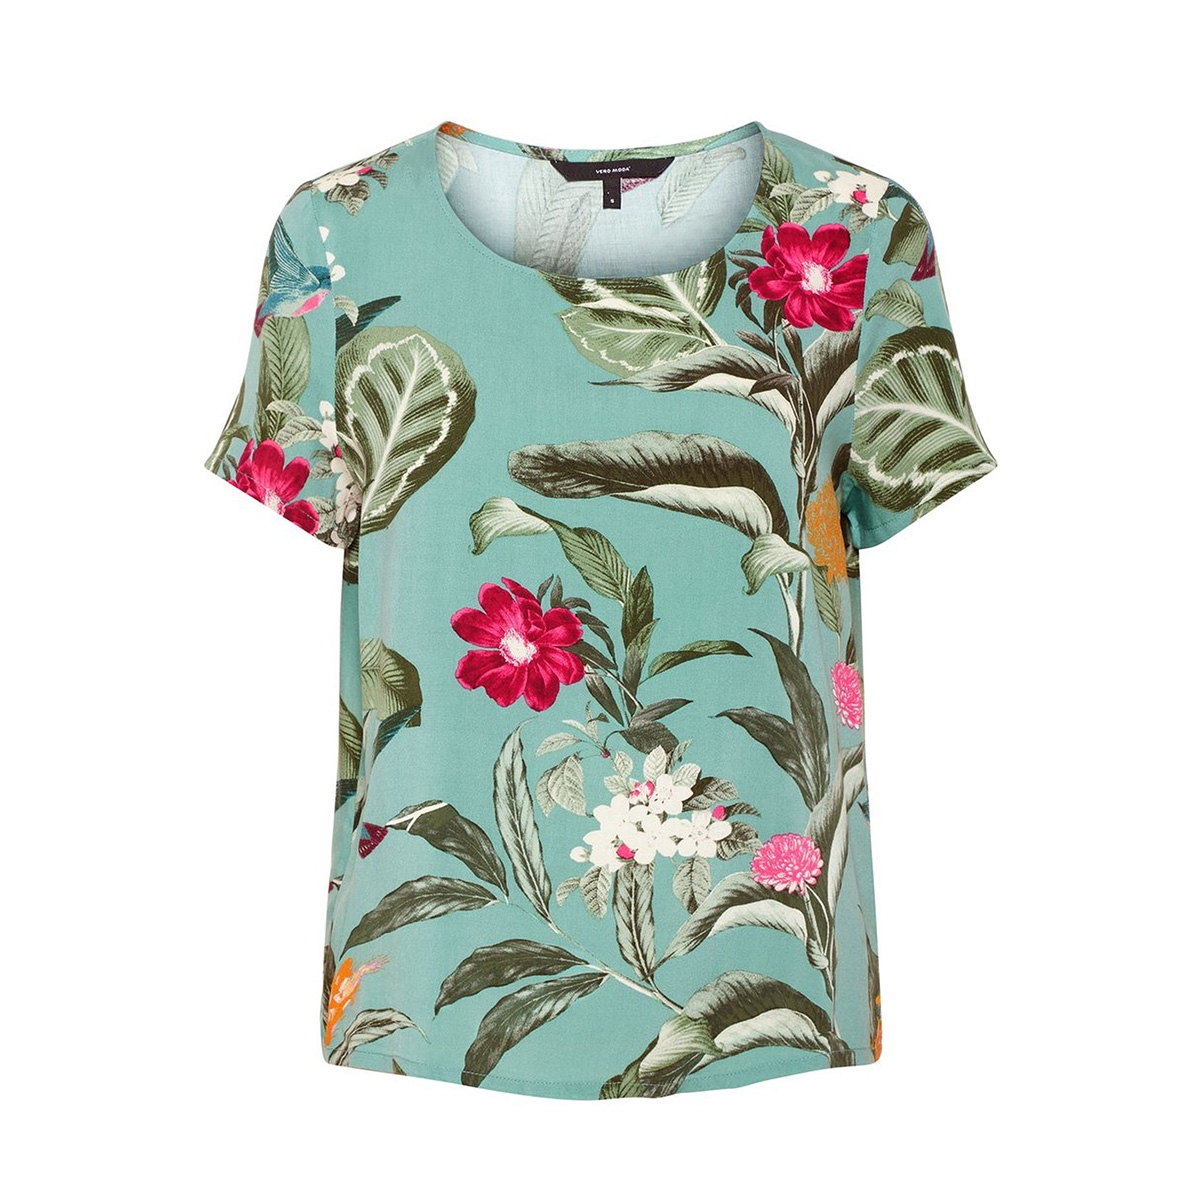 vmsimply easy ss top 10211480 vero moda t-shirt wasabi/tropicana